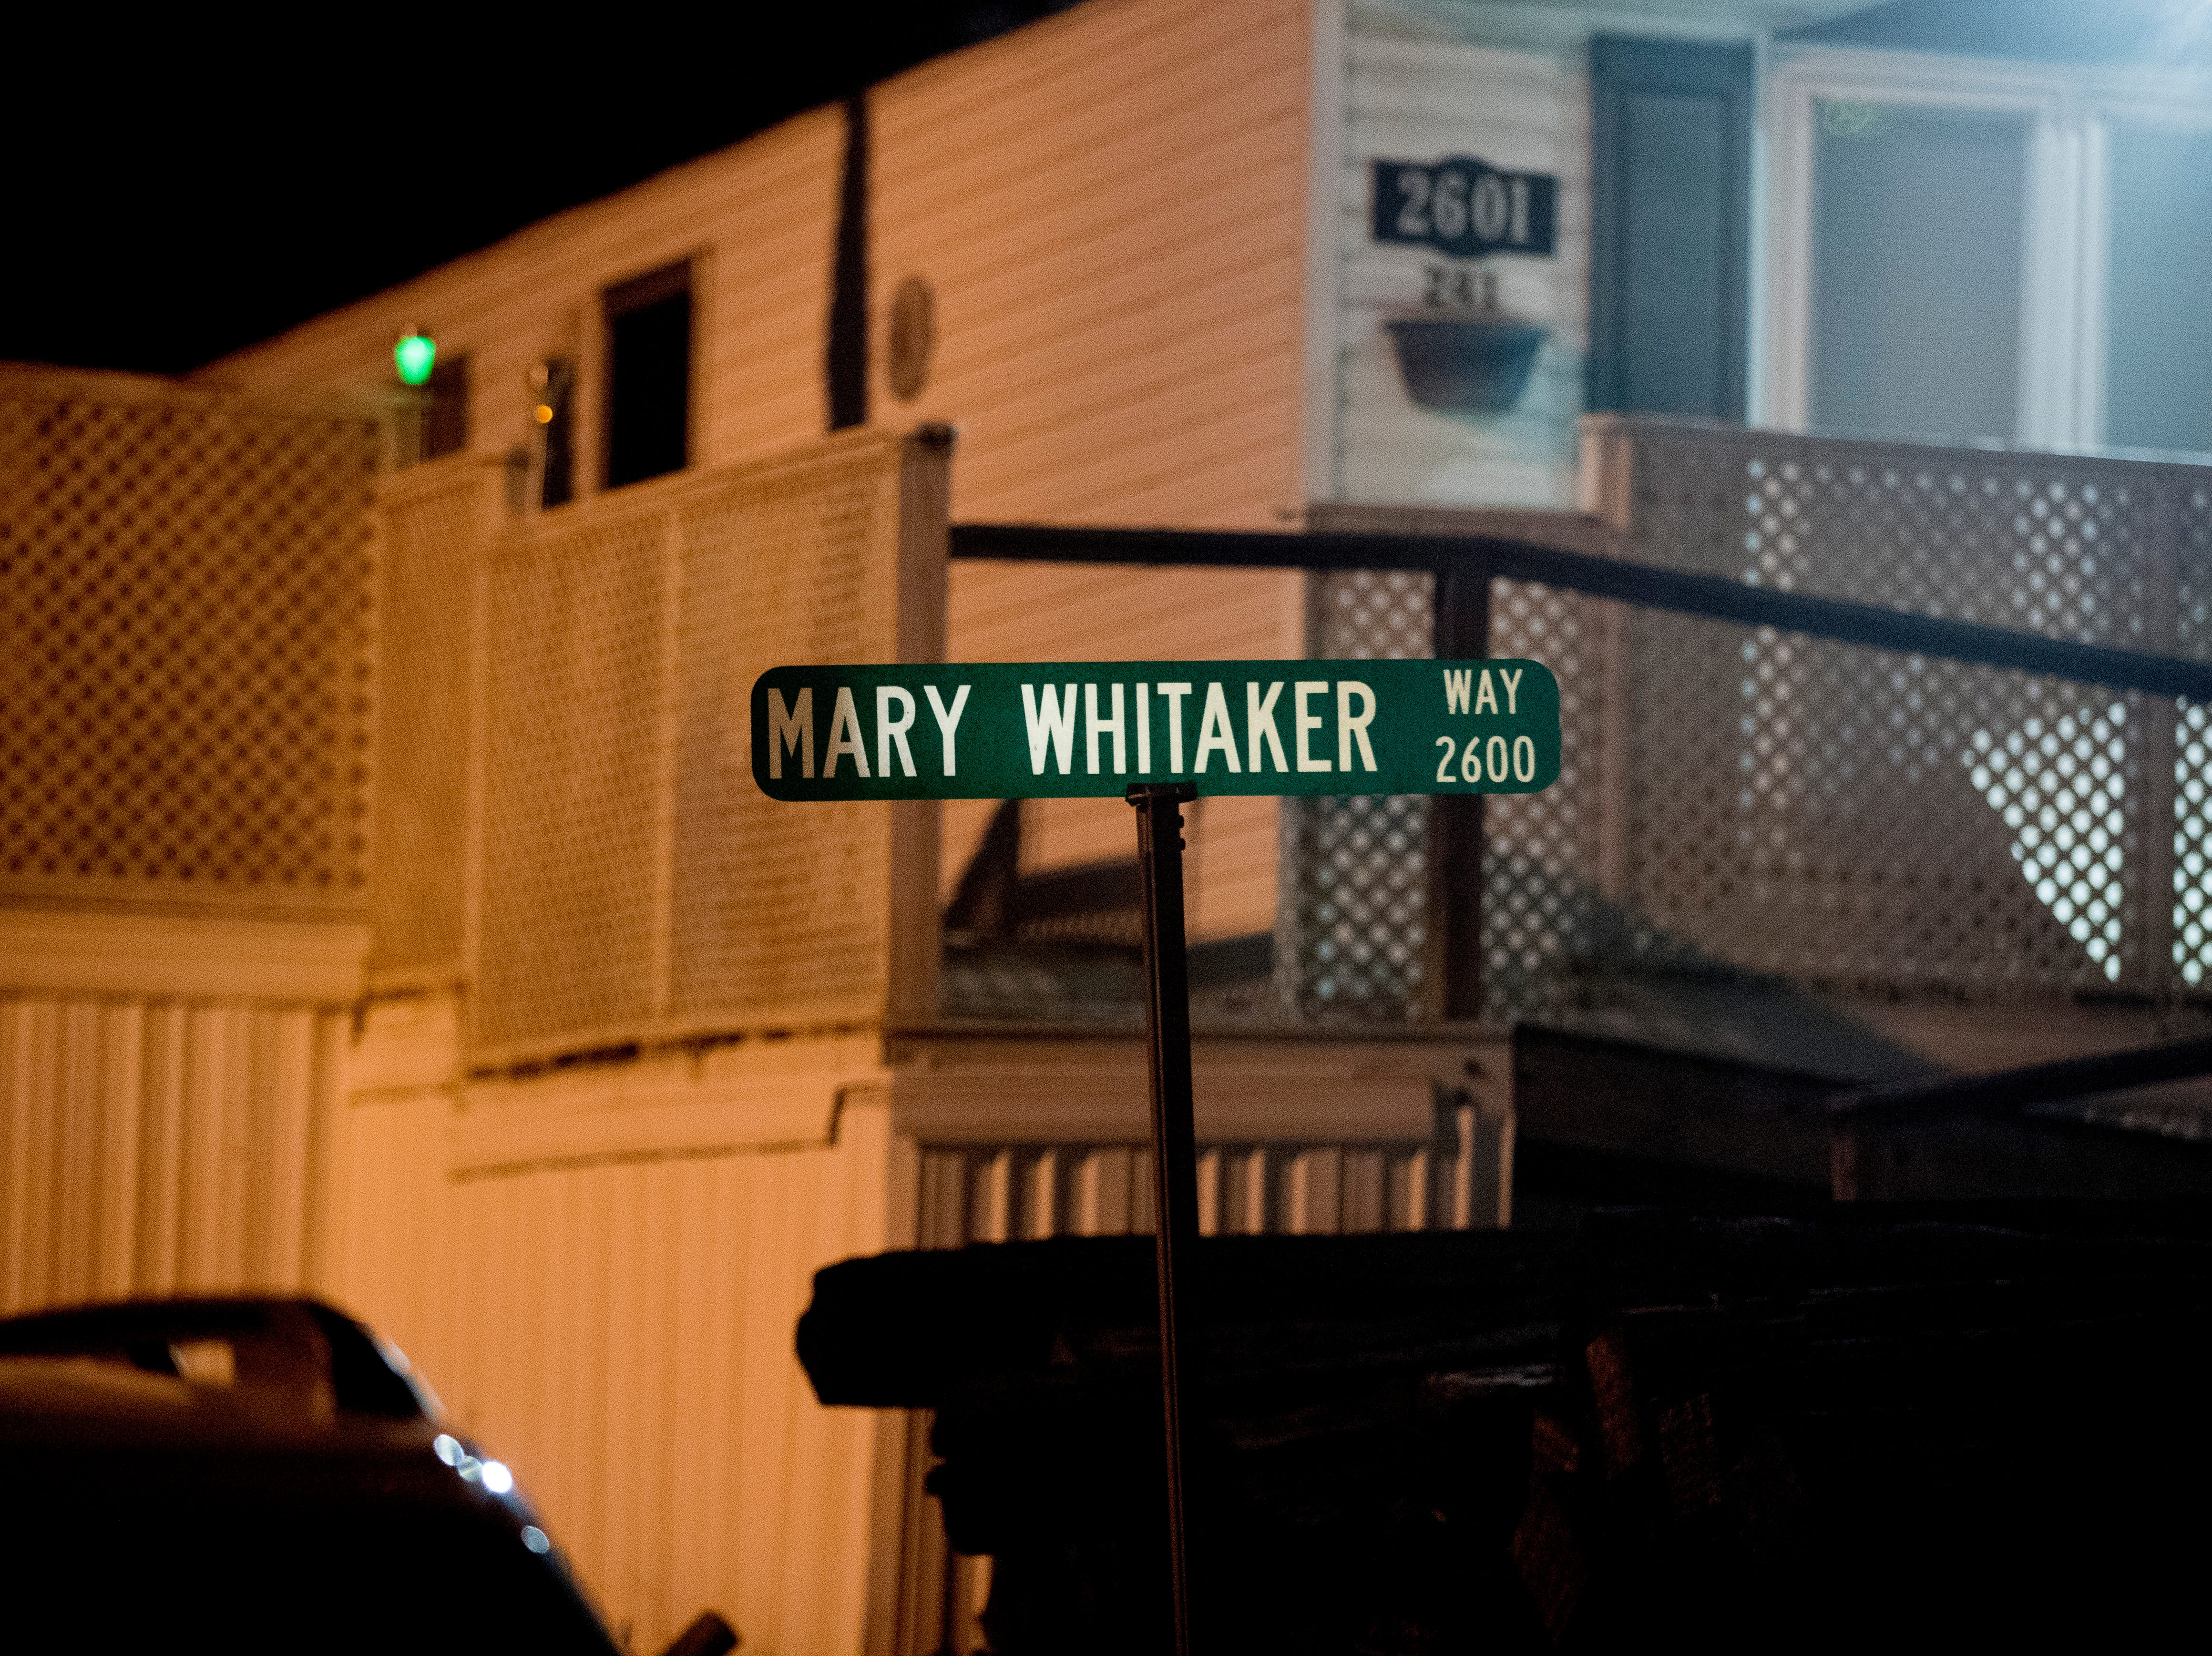 Mary Whitaker Way sign is lit up at the scene of a shooting on Forest Edge Way in Knoxville, Tennessee on Saturday, November 10, 2018. One victim was confirmed dead at the scene and a second injured.